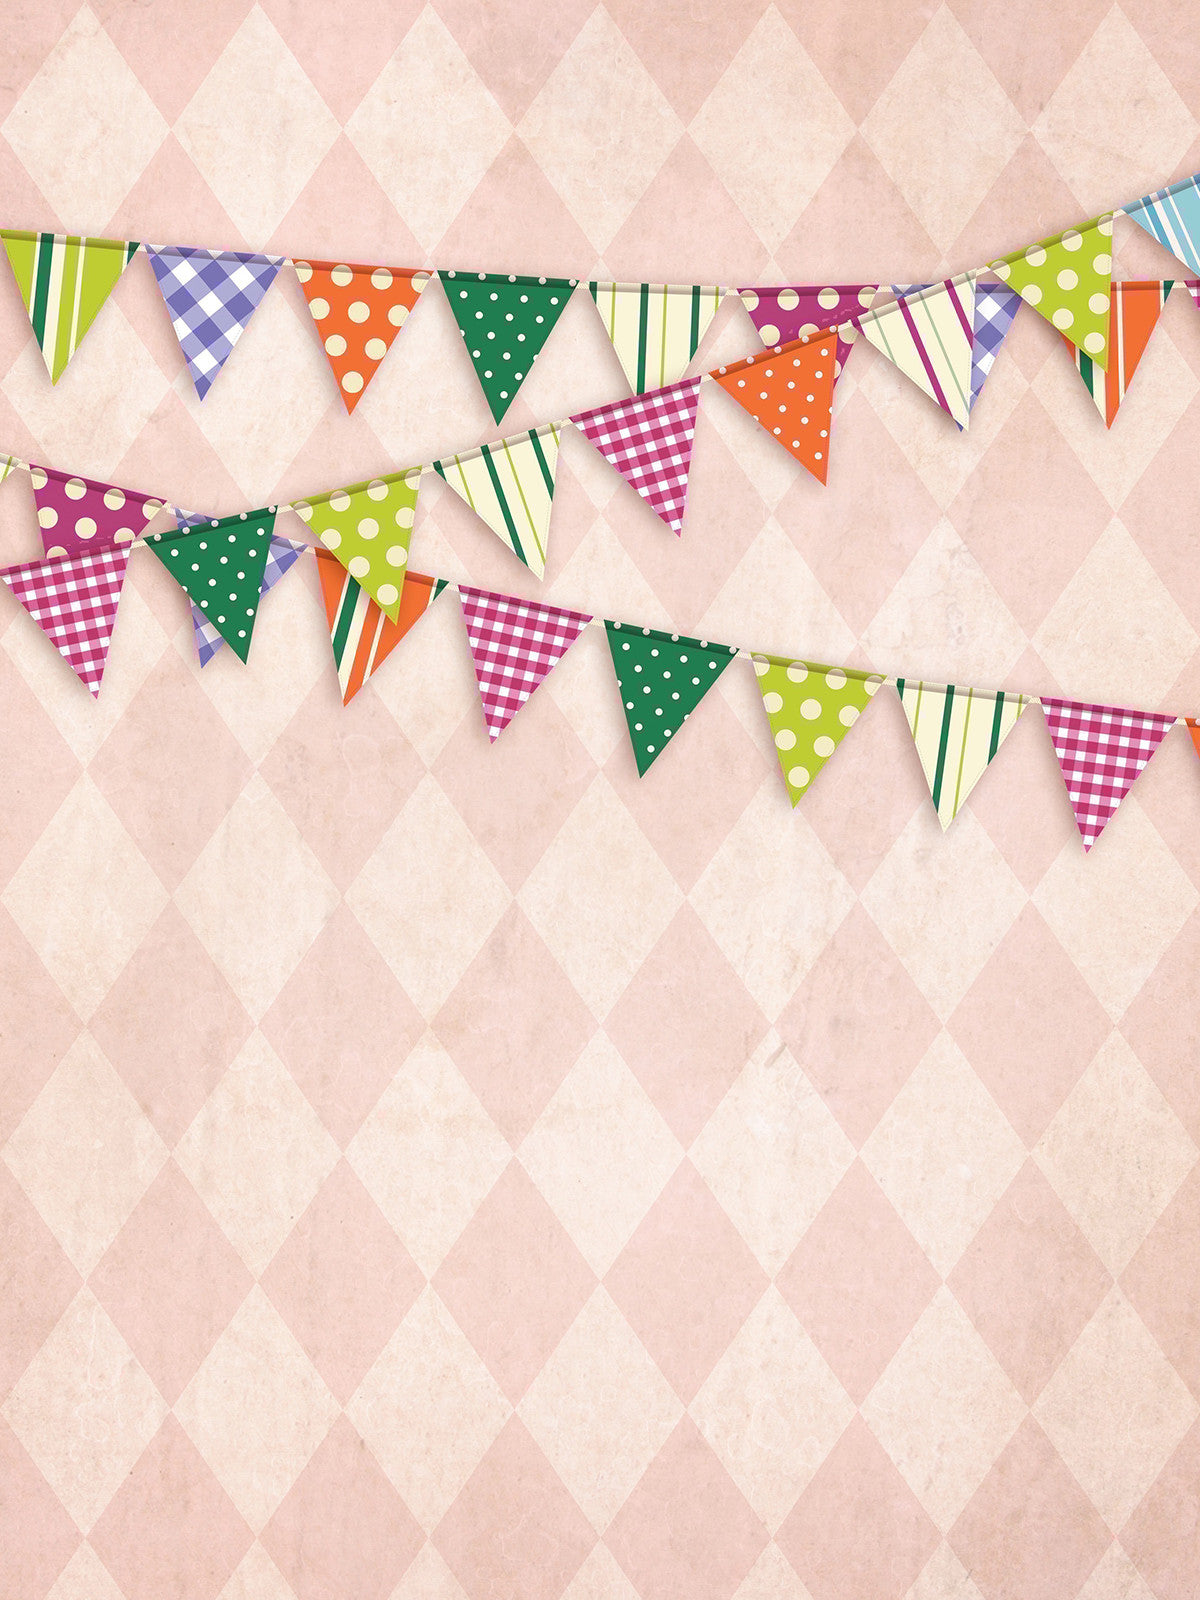 Diamond Party Pink Printed Photo Backdrop / 9081 - DropPlace